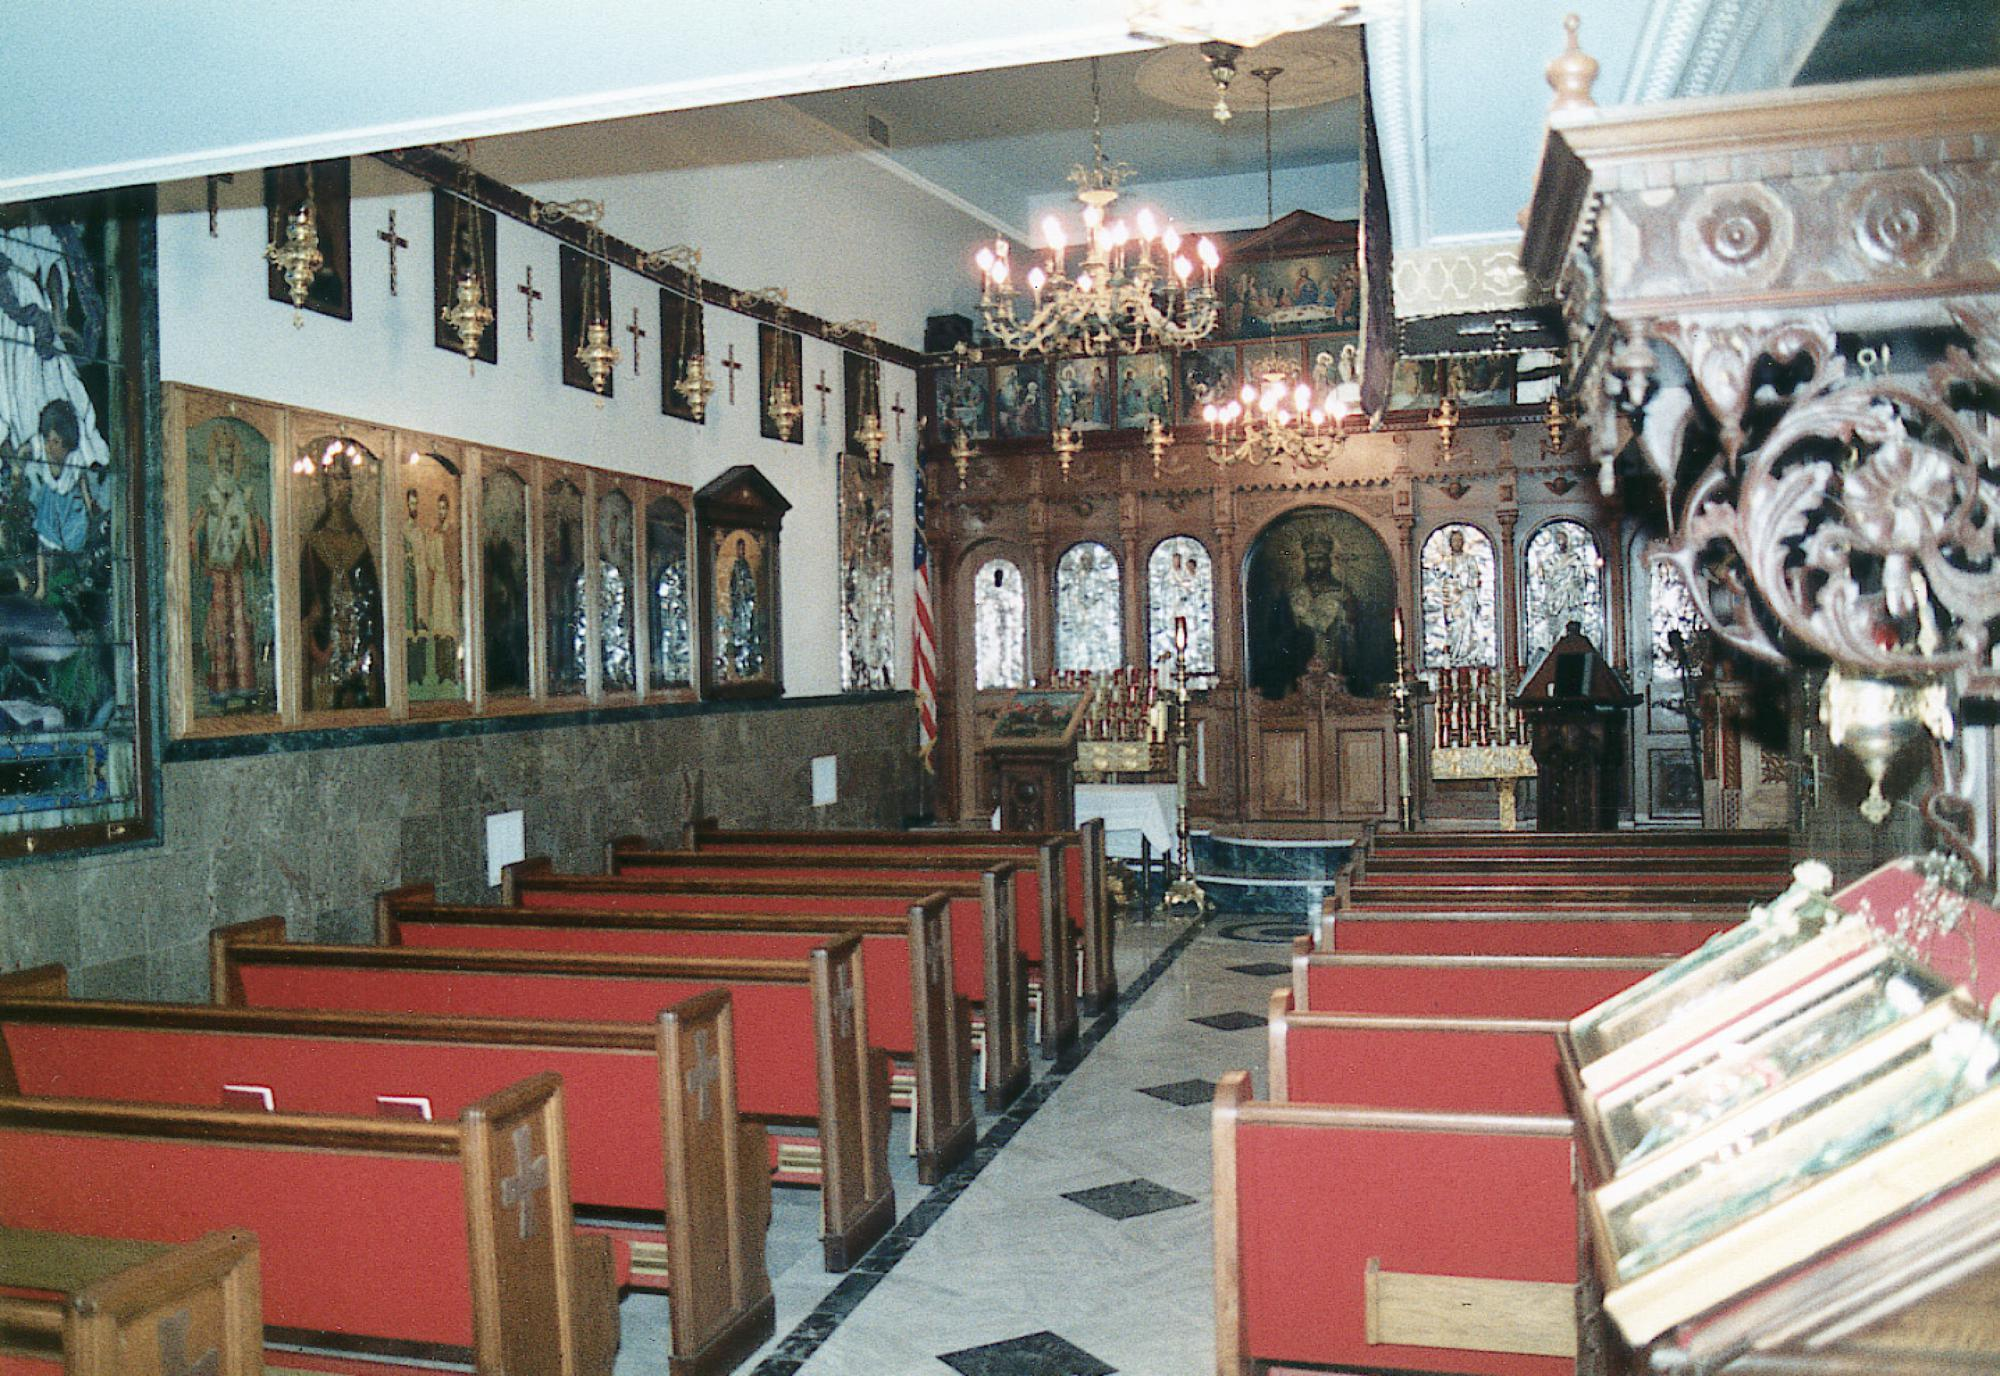 This undated photo provided the Greek Orthodox Archdiocese of America in September 2021 shows the chapel of the former St. Nicholas Greek Orthodox Church, which was located in New York's financial district. St. Nicholas was the only house of worship destroyed in the Sept. 11, 2001 attacks and is currently being rebuilt as a church and national shrine. (Greek Orthodox Archdiocese of America via AP)